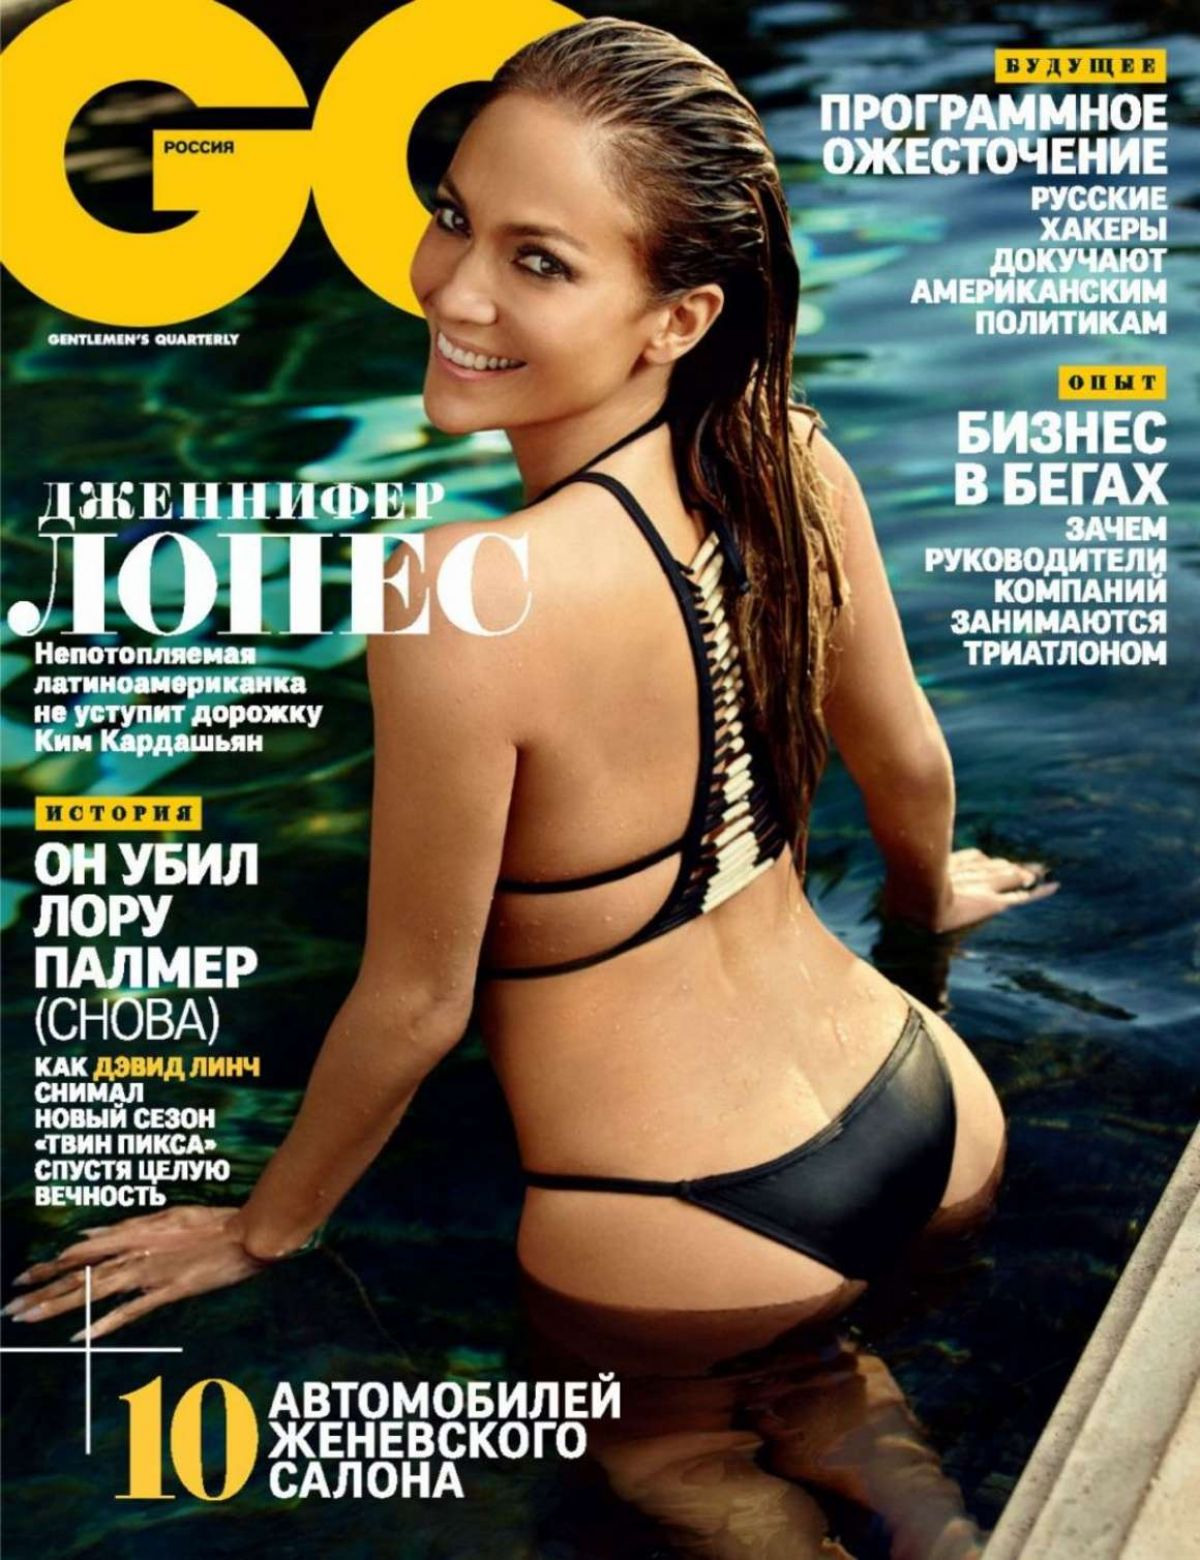 JENNIFER LOPEZ in Swismuit for GQ Magazine, Russia June 2017